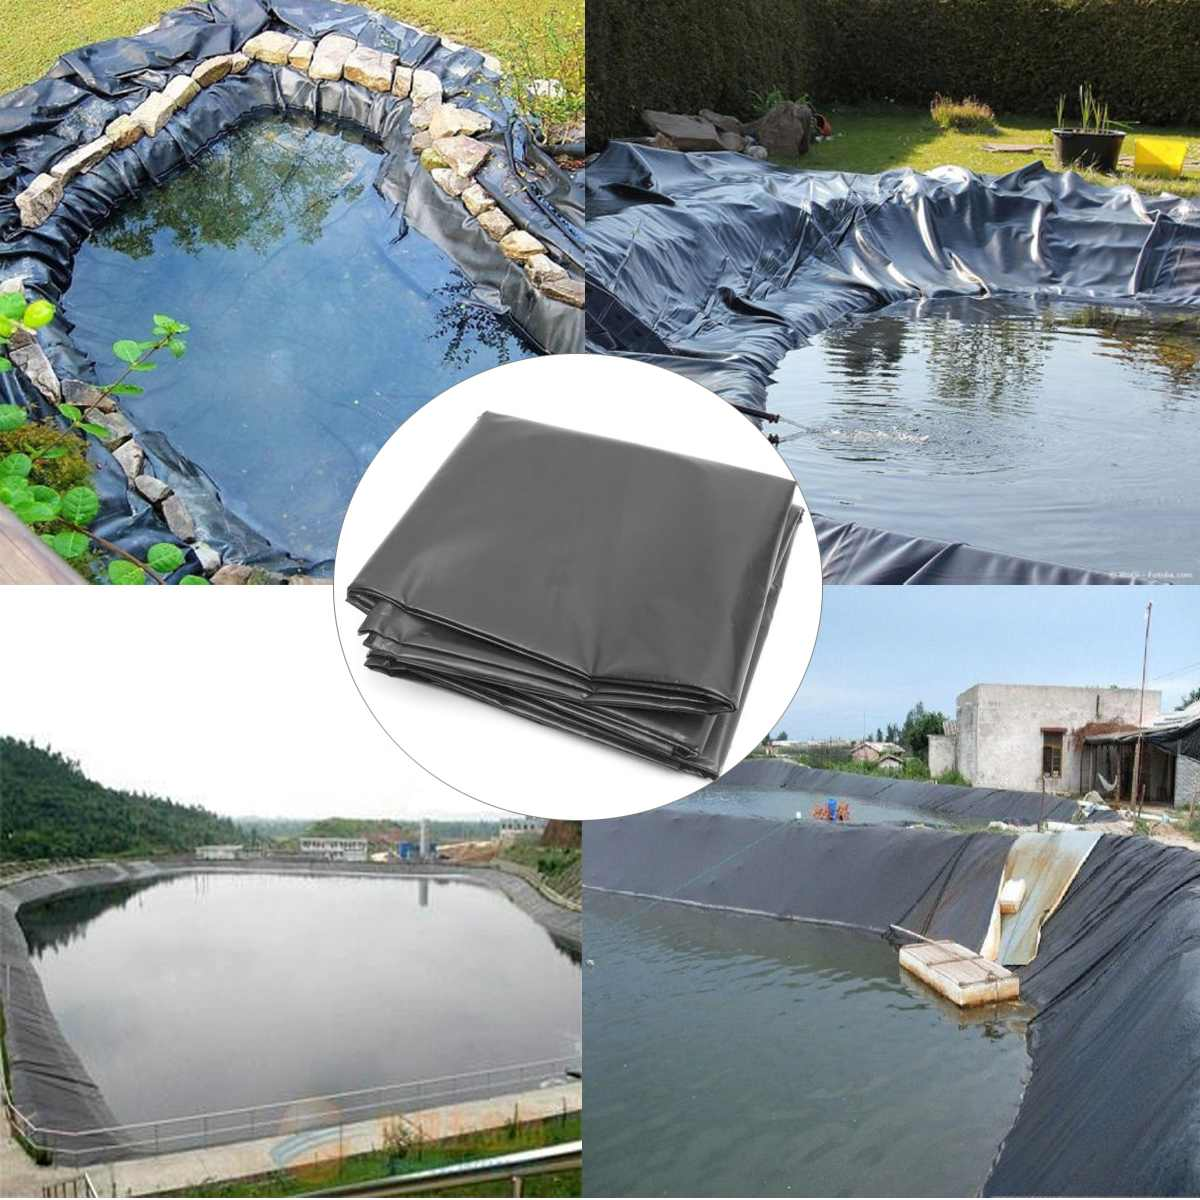 7x7m / 5x5m / 4x4m HDPE Fish Pond Liner Garden Pond Landscaping Pool Reinforced Thick Heavy Duty Waterproof Membrane Liner Cloth